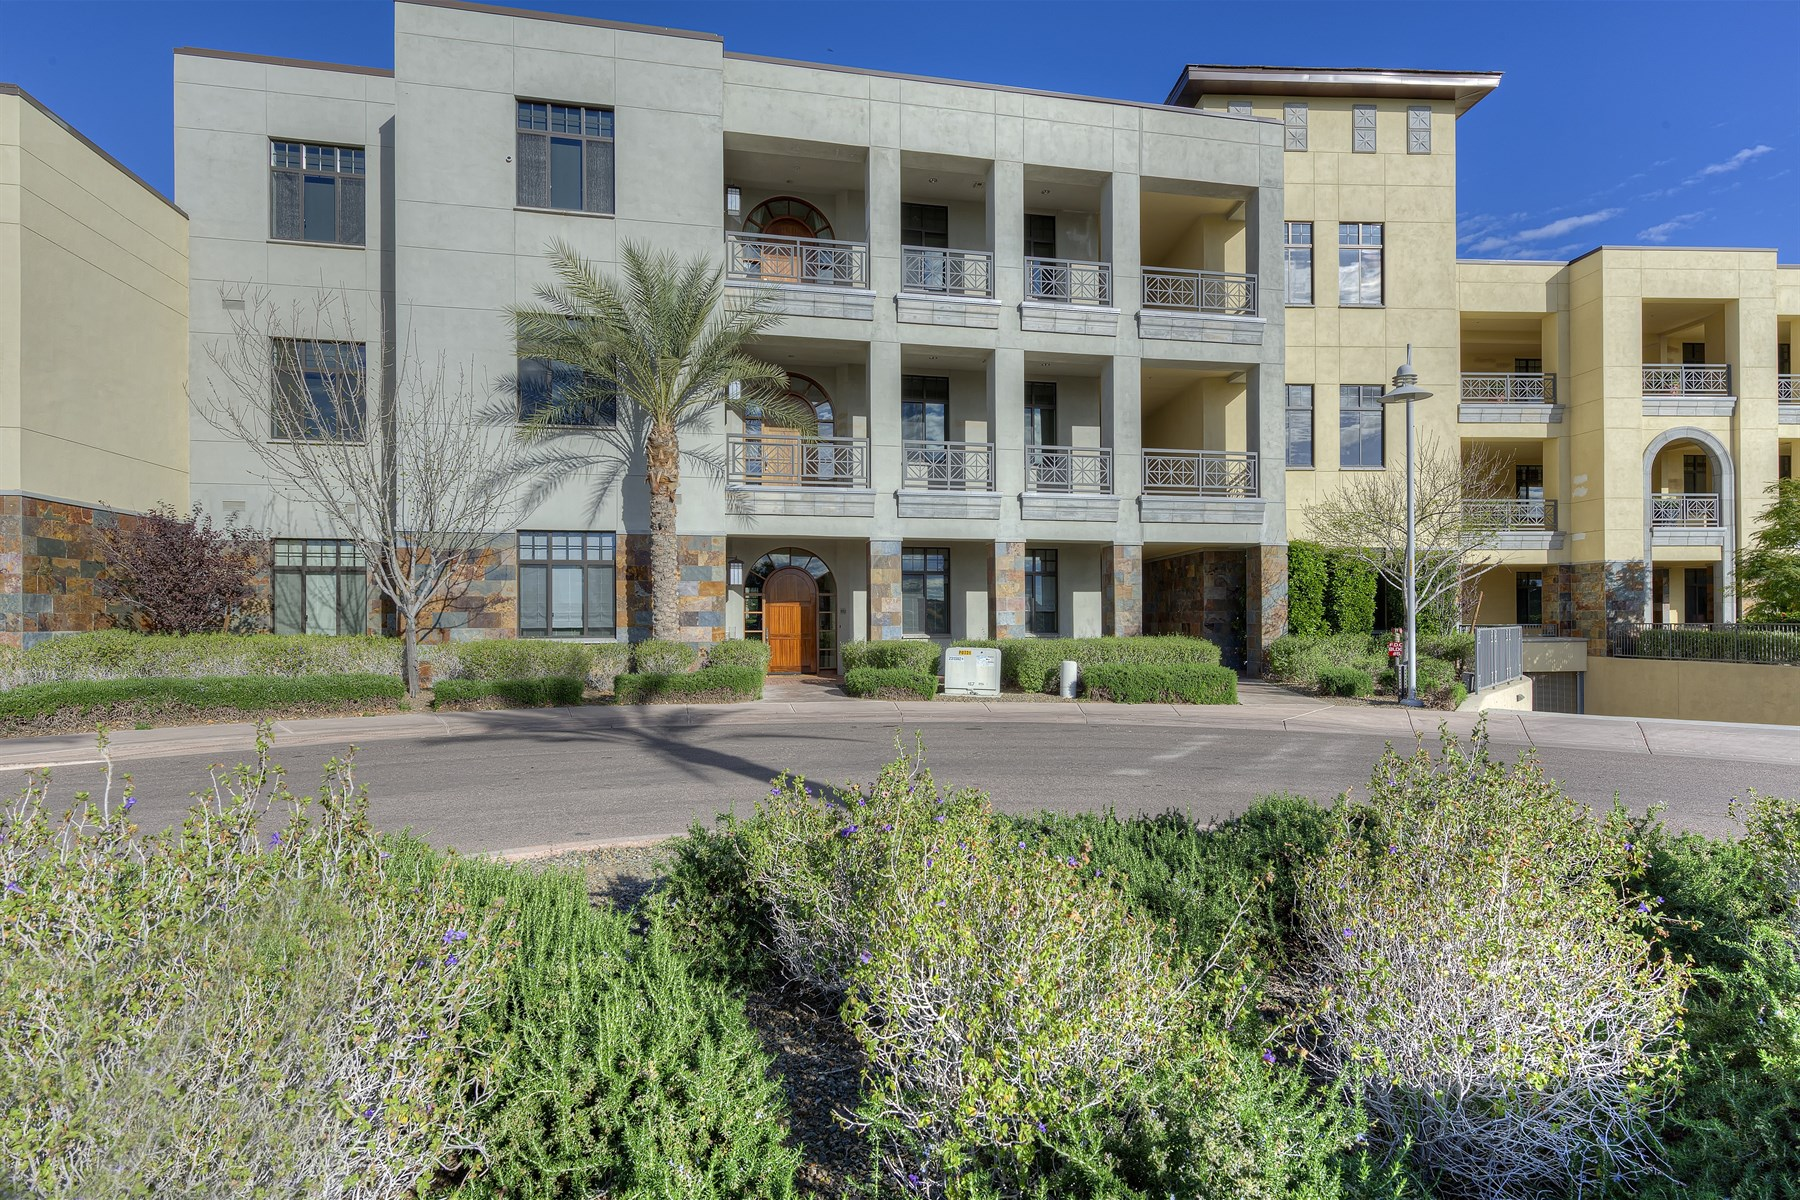 Condominium for Sale at Breathtaking - One Of A Kind - Penthouse Condo In Two Biltmore Estates 2 Biltmore Estates #314 Phoenix, Arizona 85016 United States